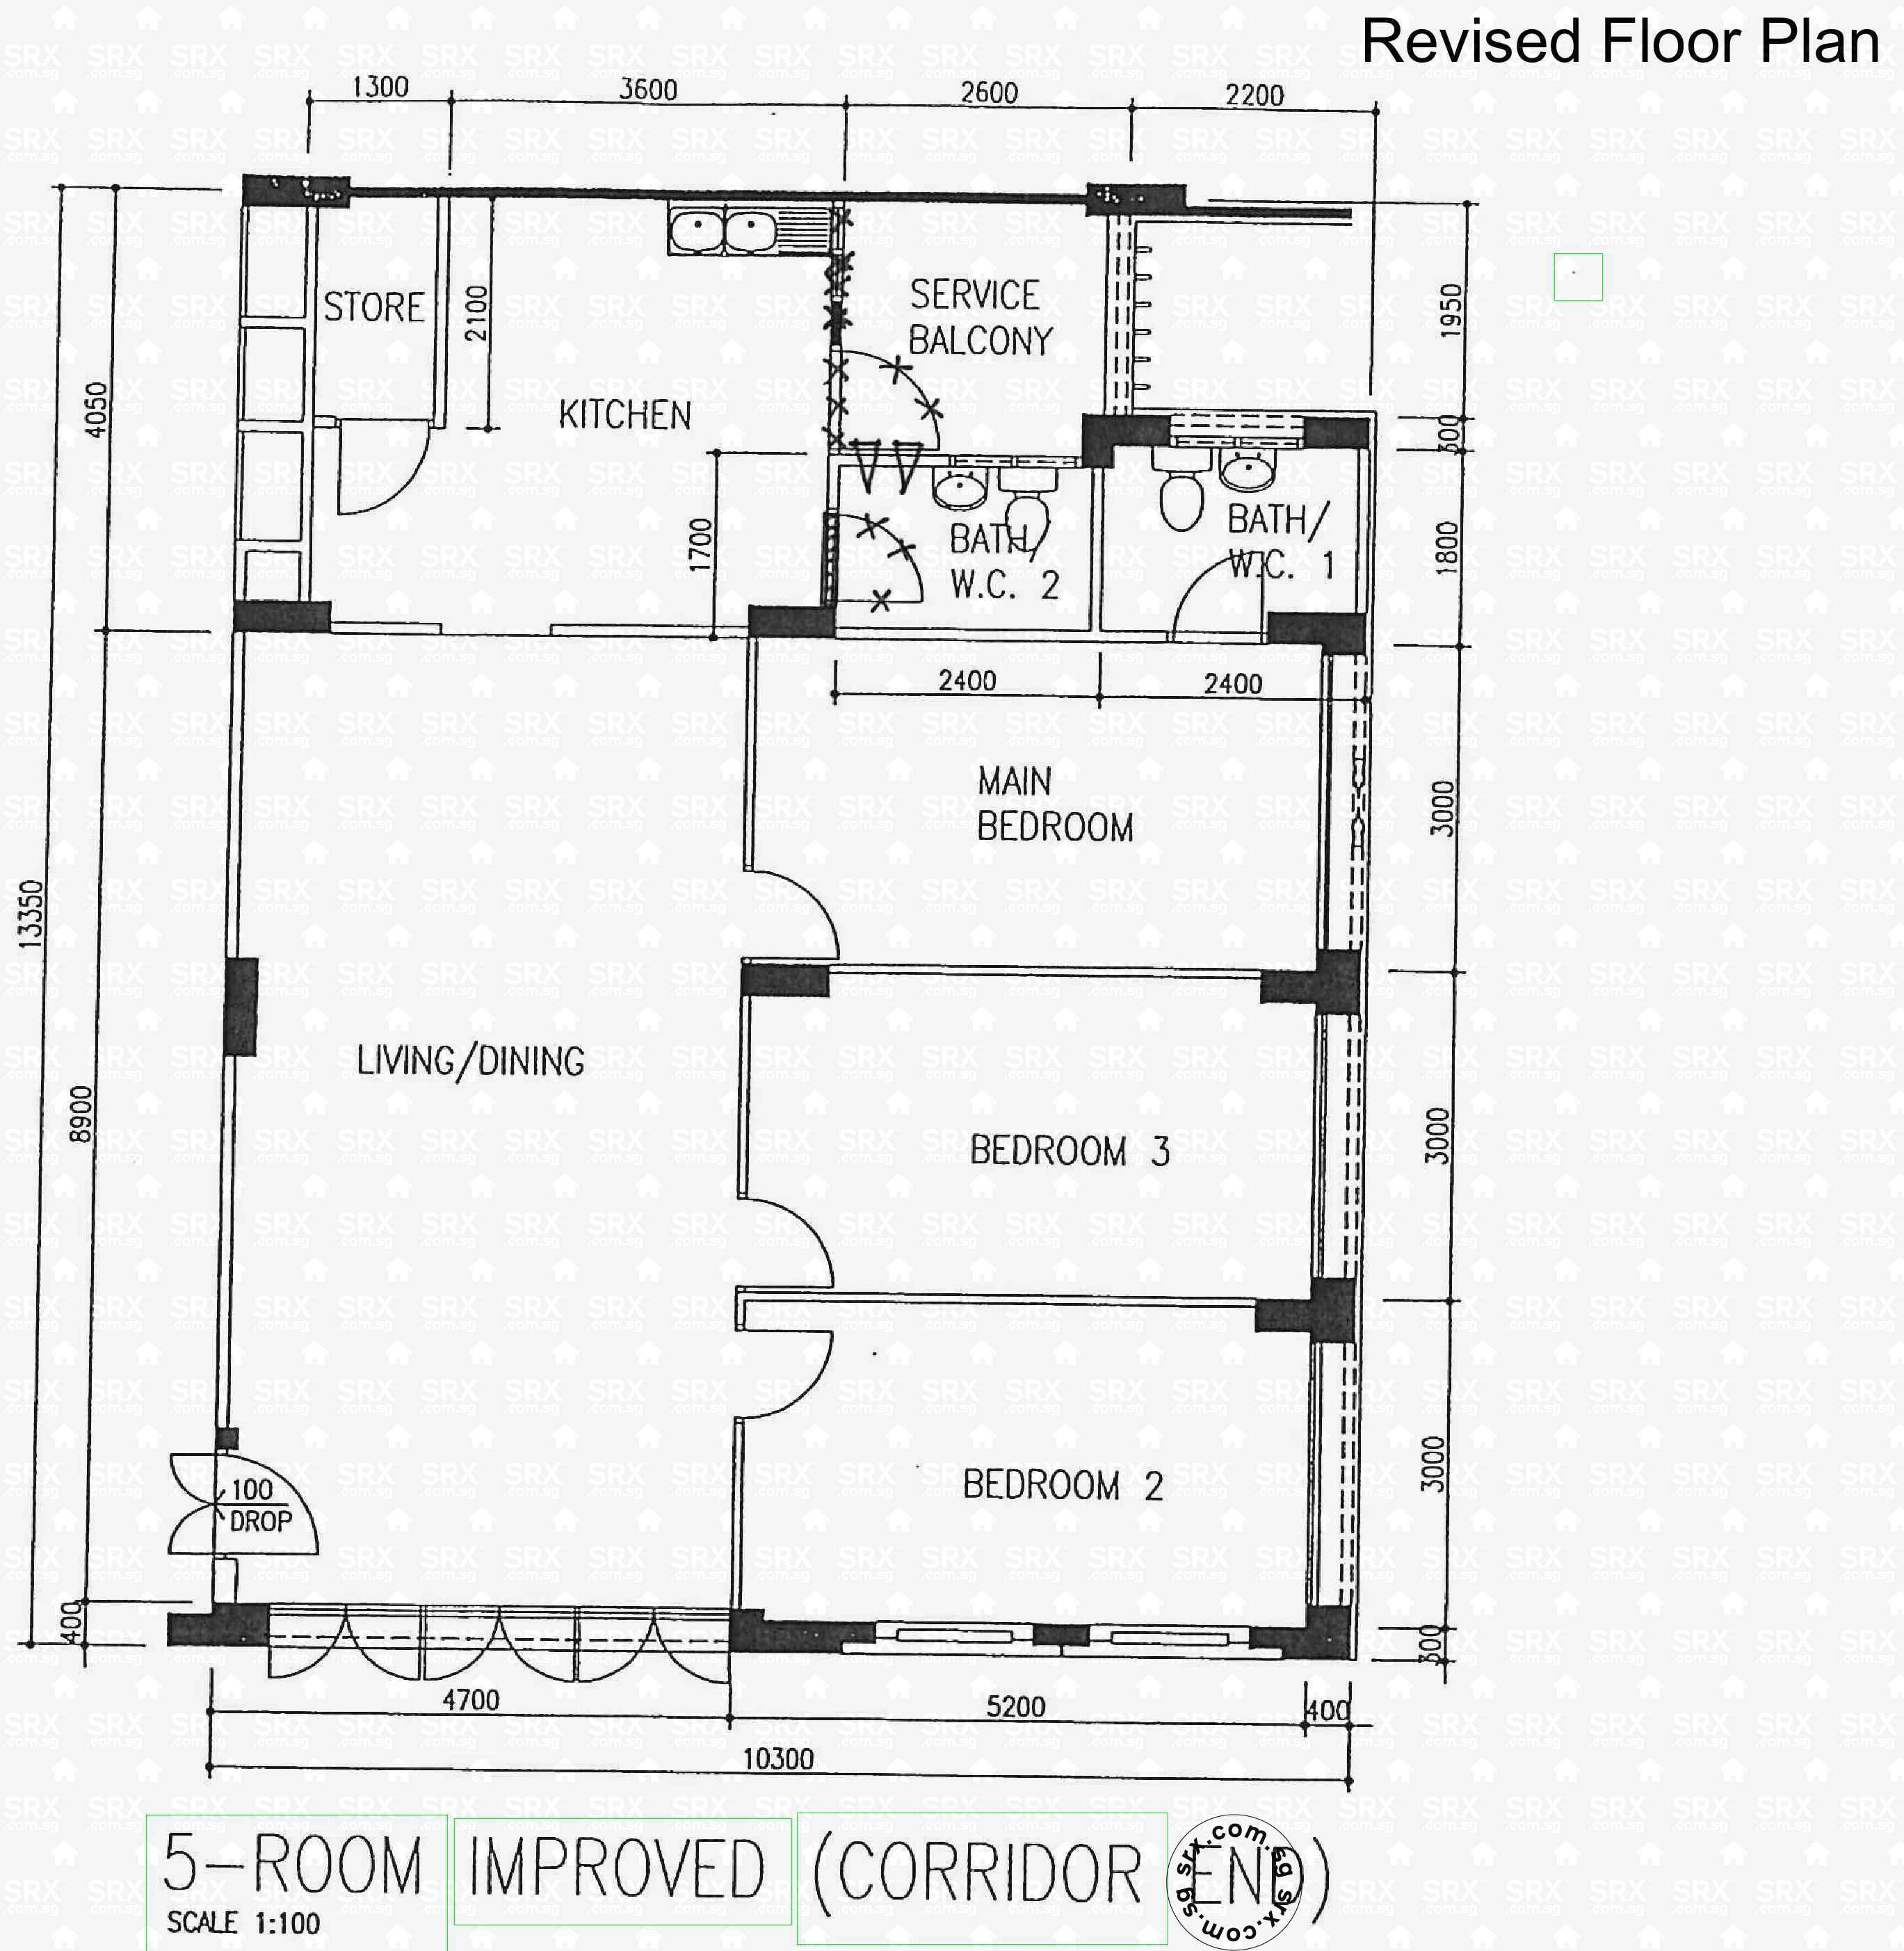 Floor plans for pasir ris street 71 hdb details srx property for Floor plans 761 bay street